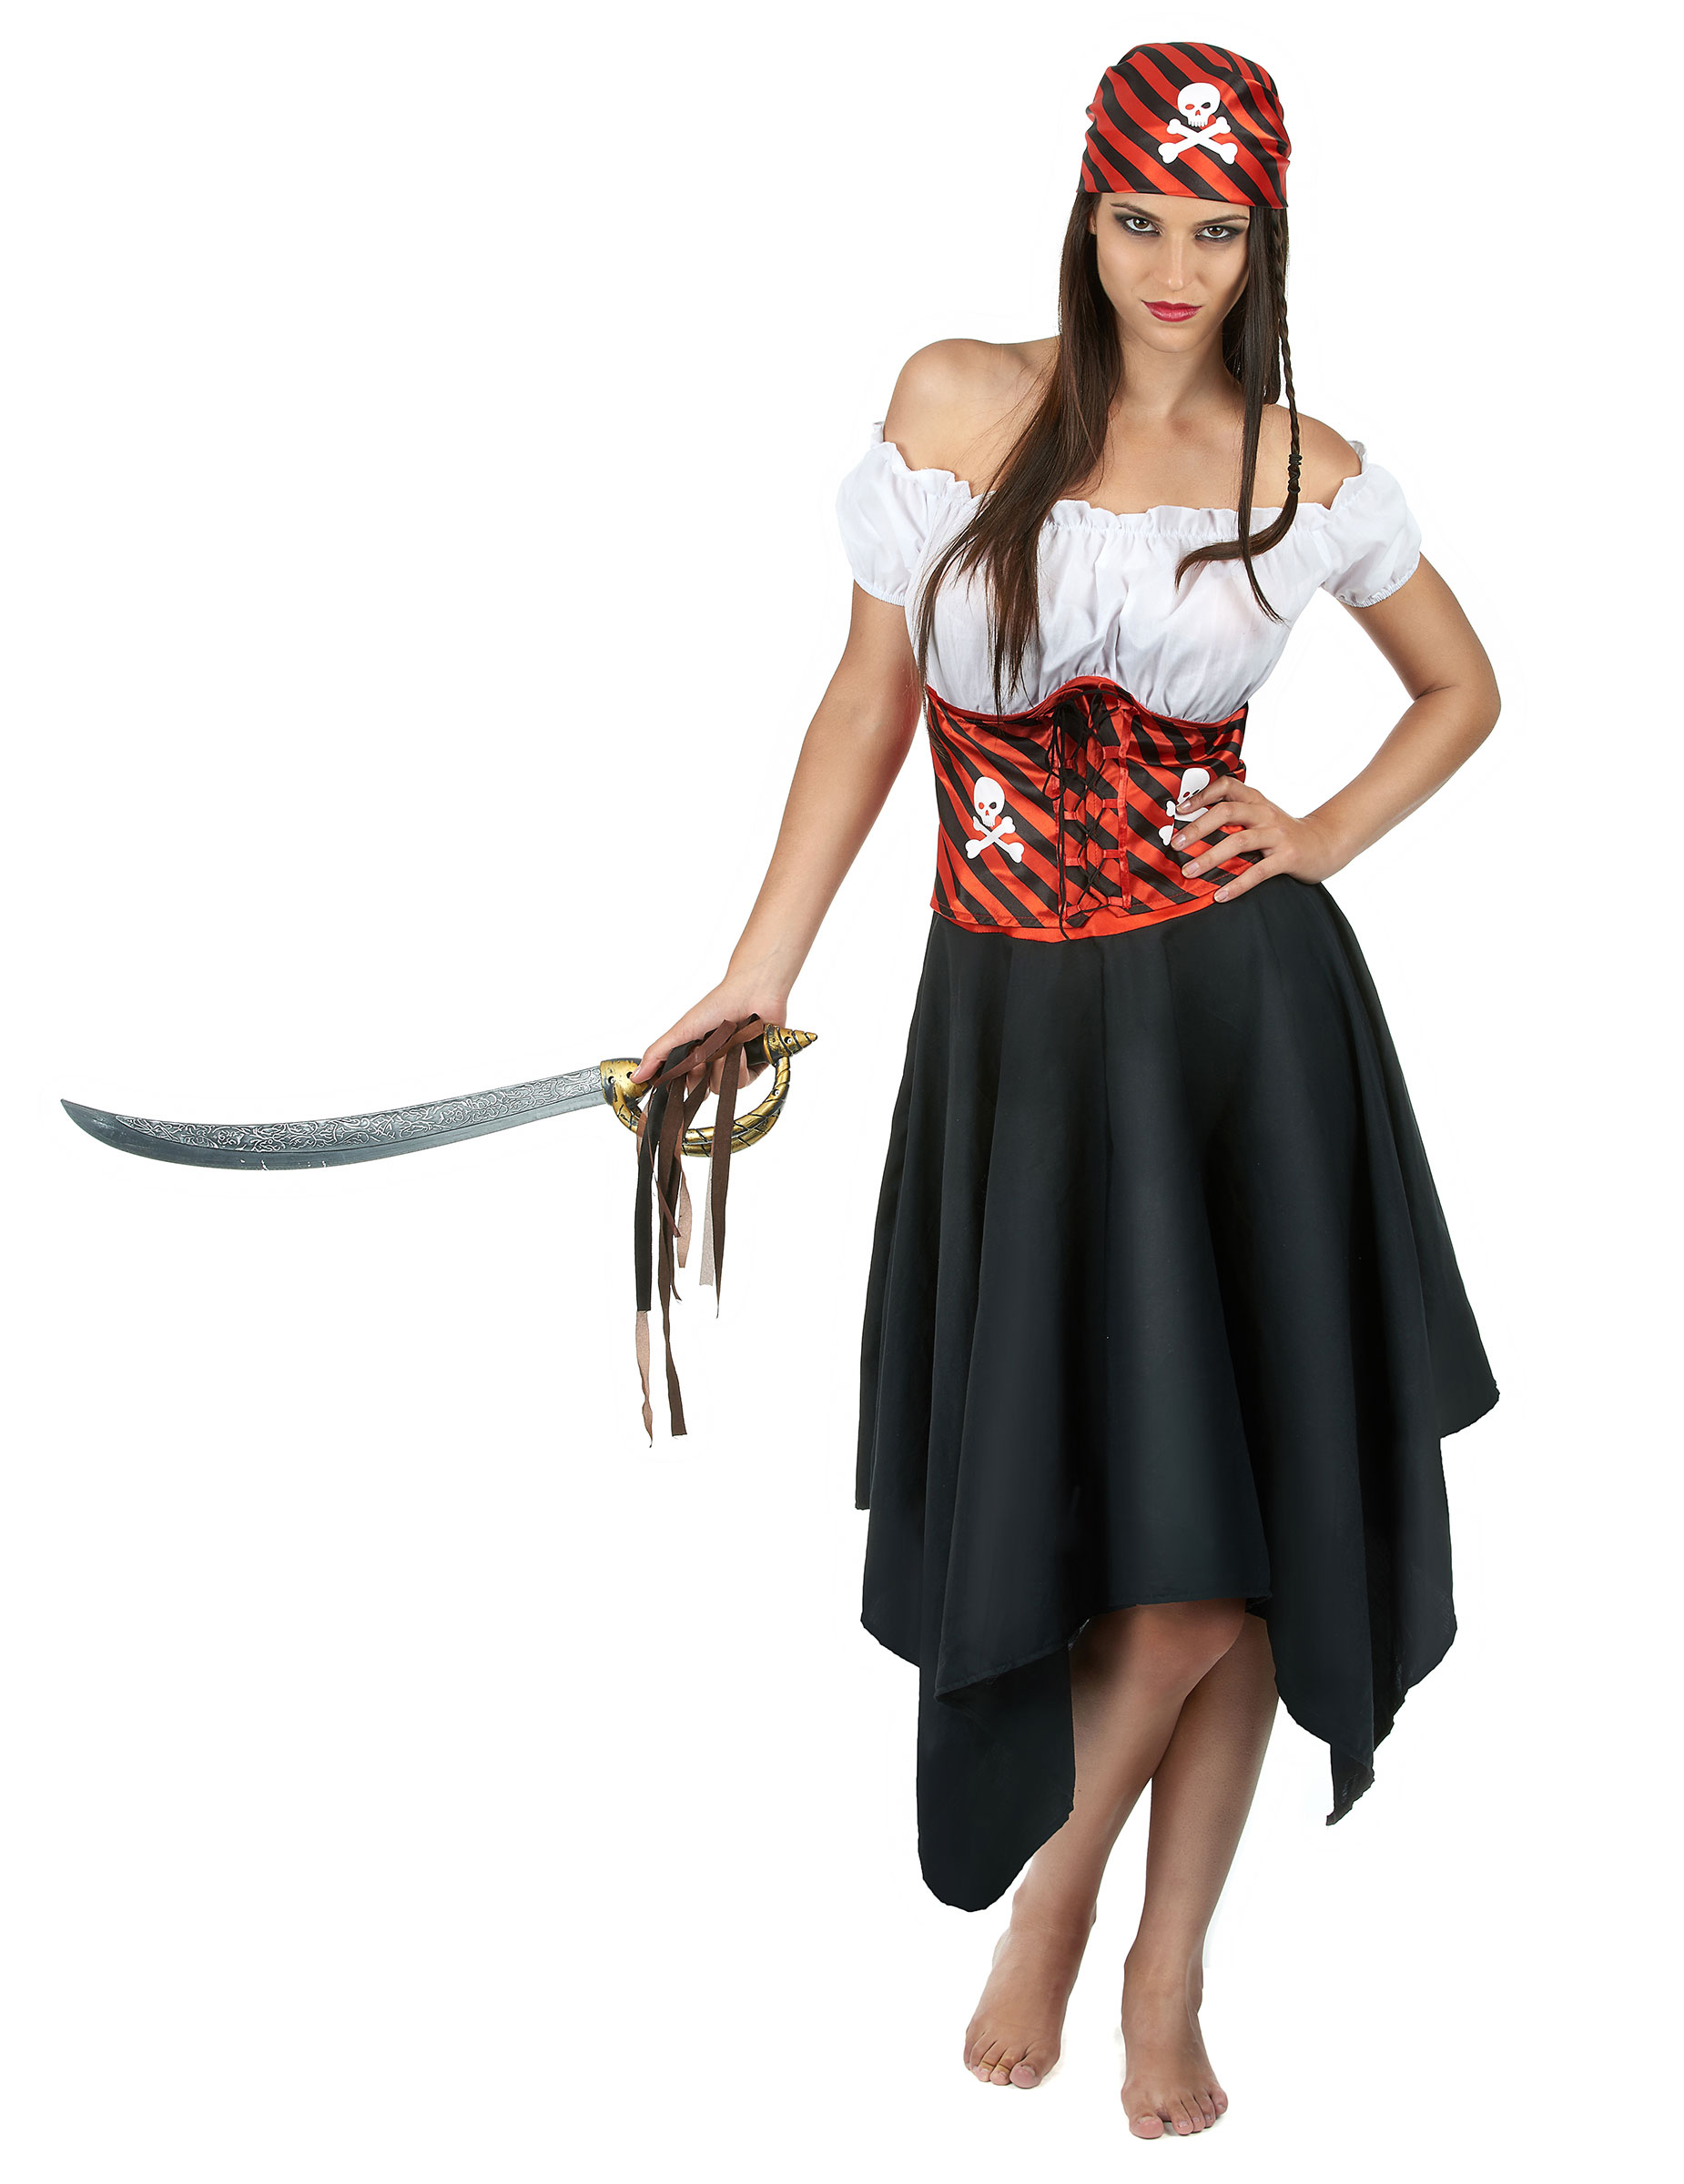 Shop The Largest Collection Of Kids And Adult Halloween Costumes. Wearing costumes for Halloween and trick-or-treating are things that kids of all ages look forward to, but we believe the fun should last year round not just the 31st of October.